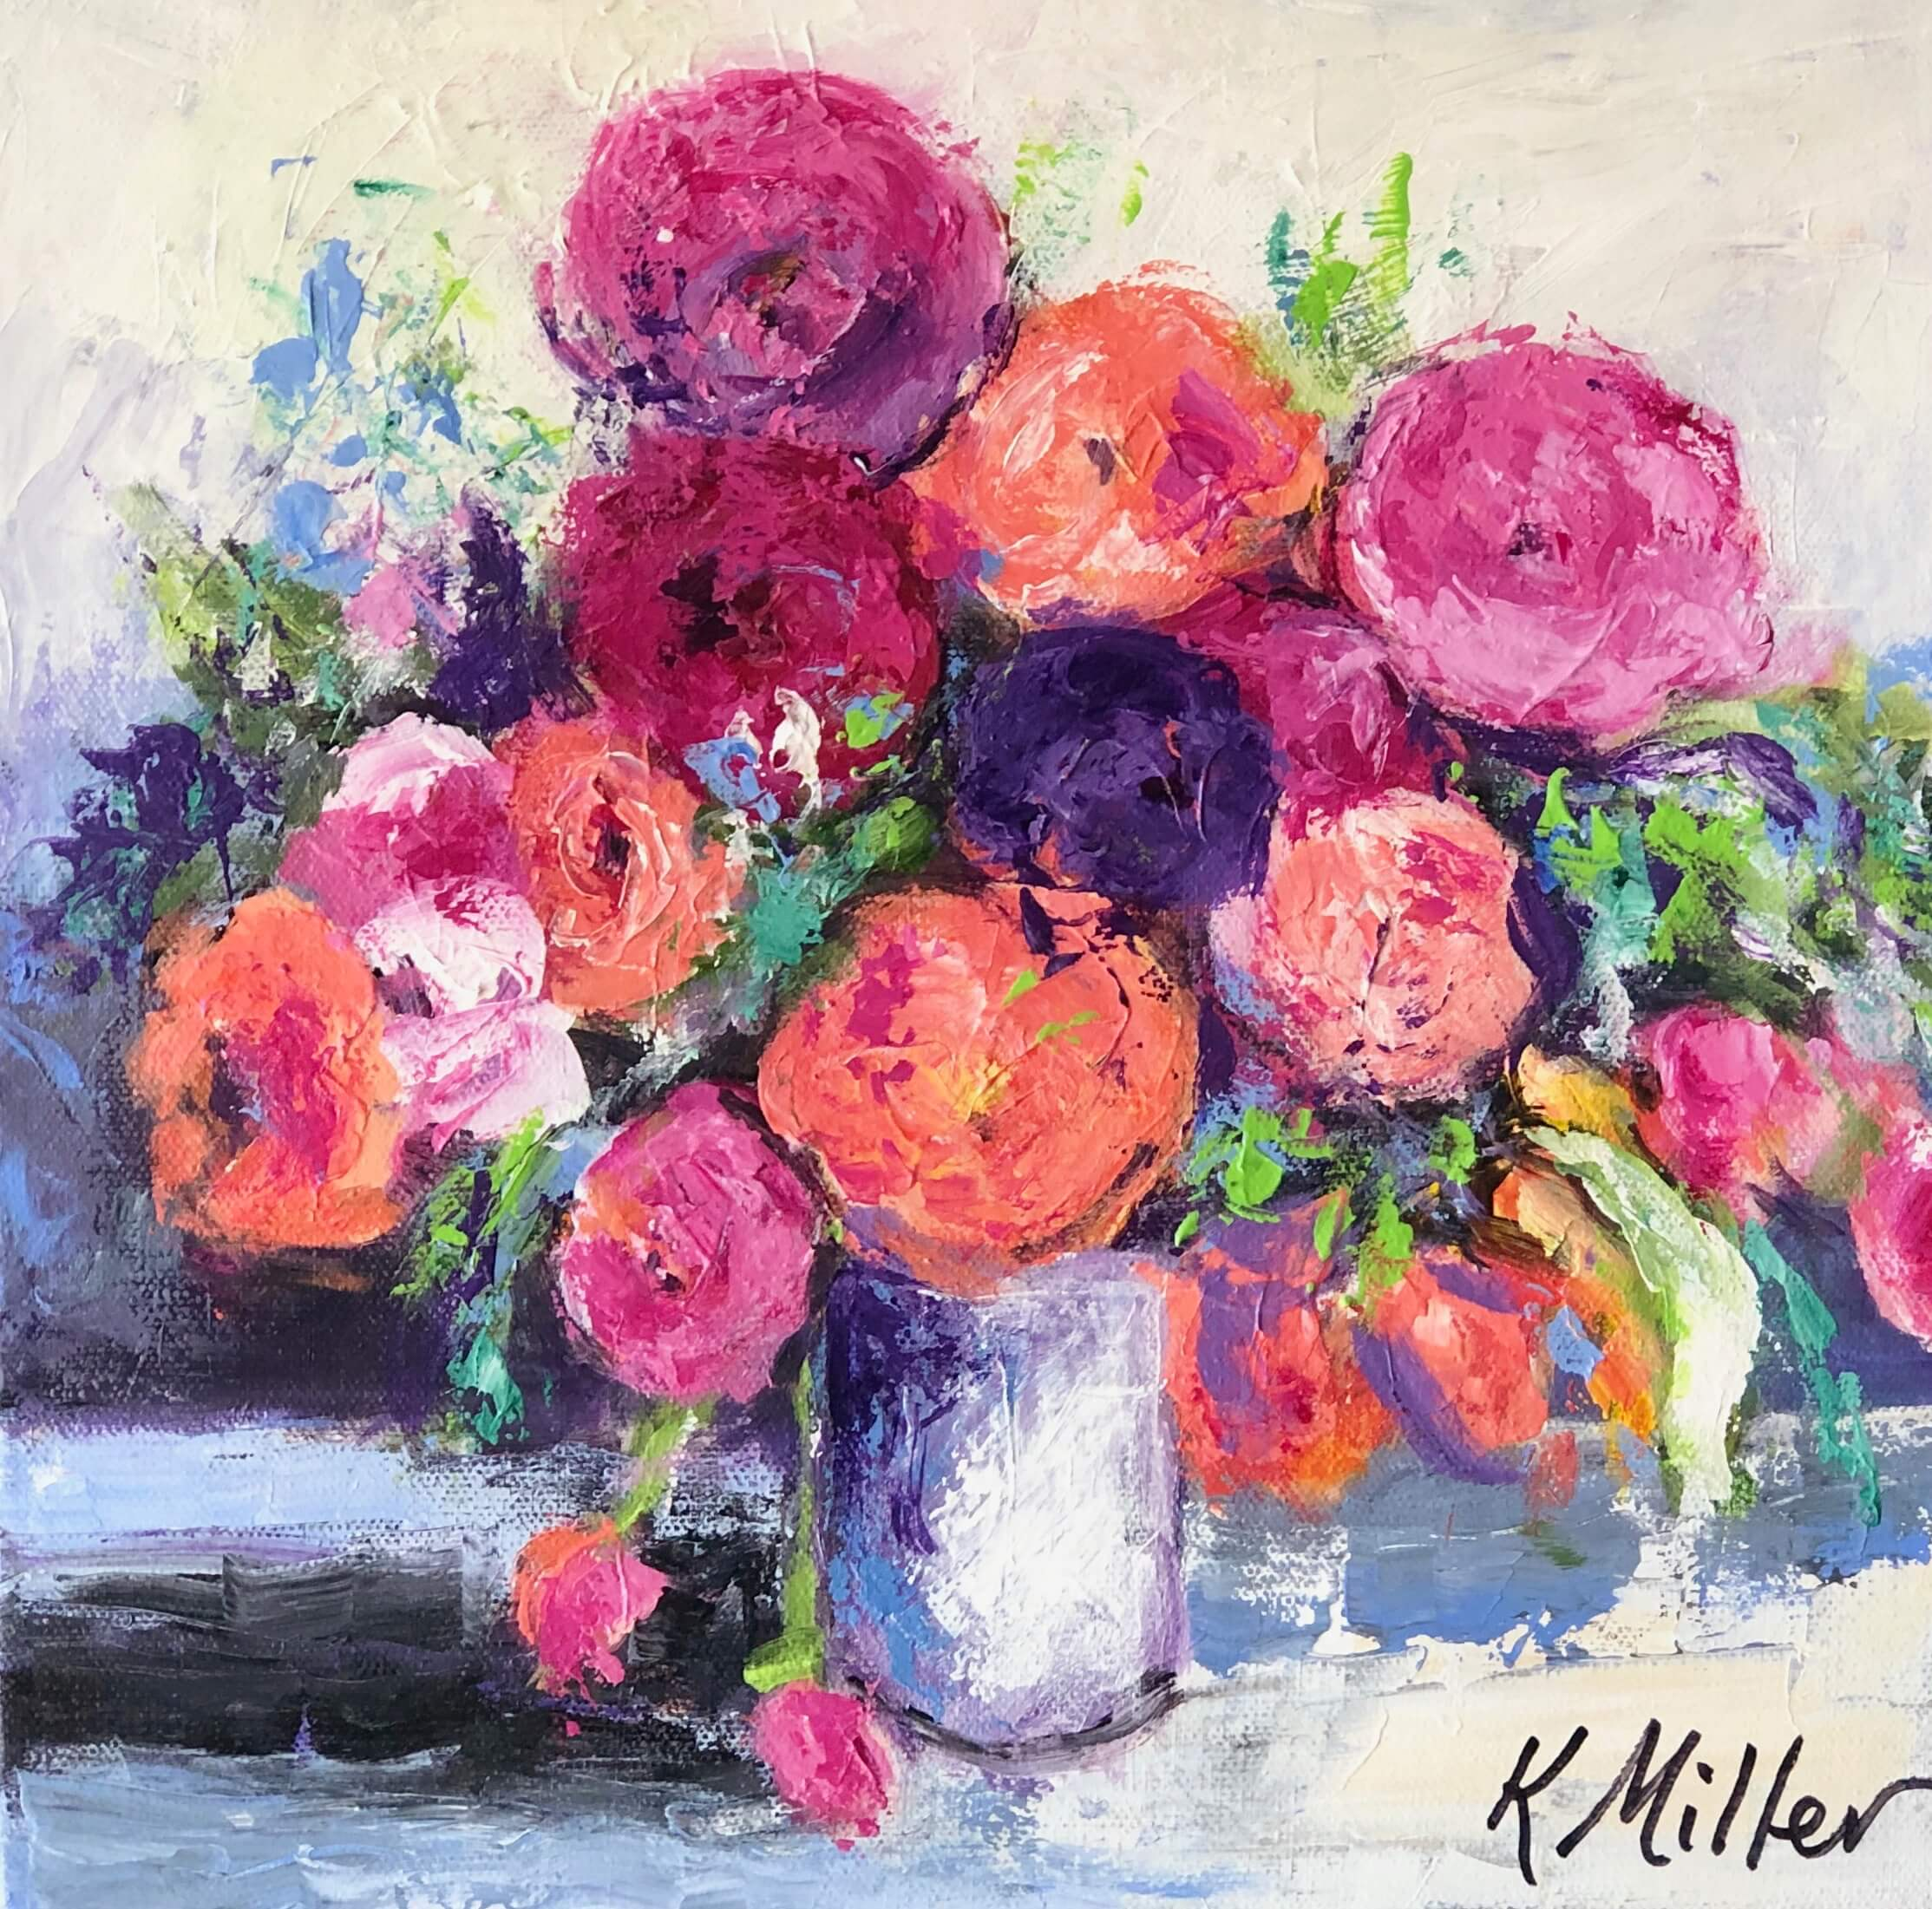 Peonies and Ranunculus painting by Kathy Miller inspired by Lewis Miller floral arrangement